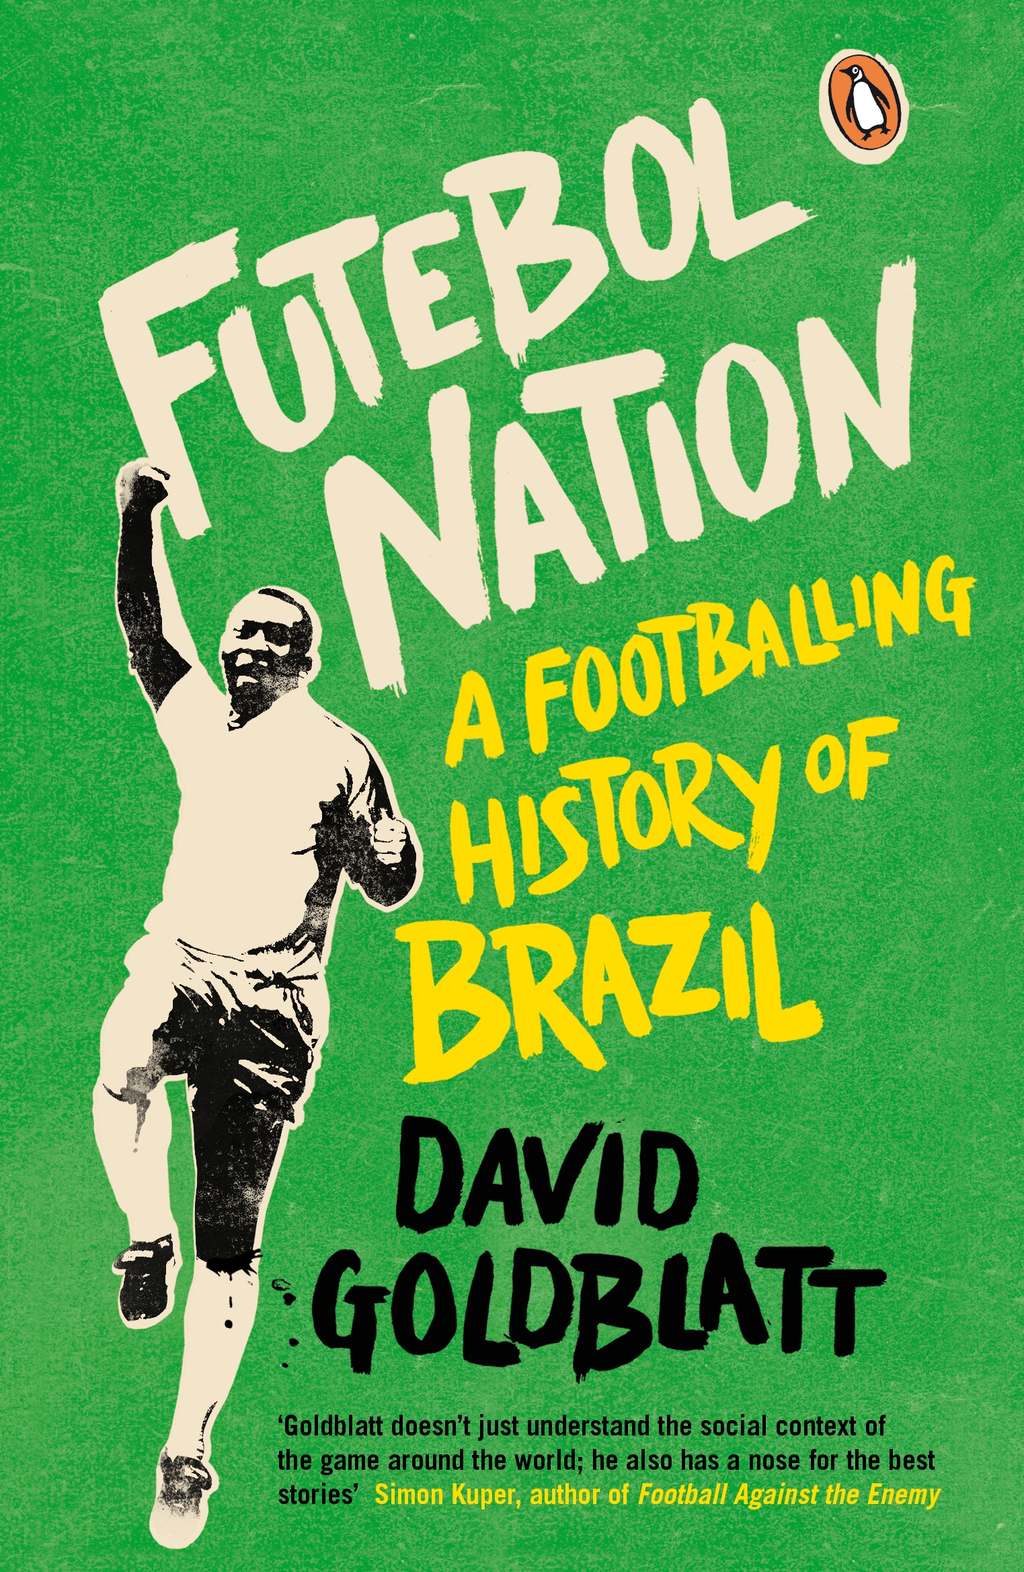 Futebol Nation A Footballing History of Brazil